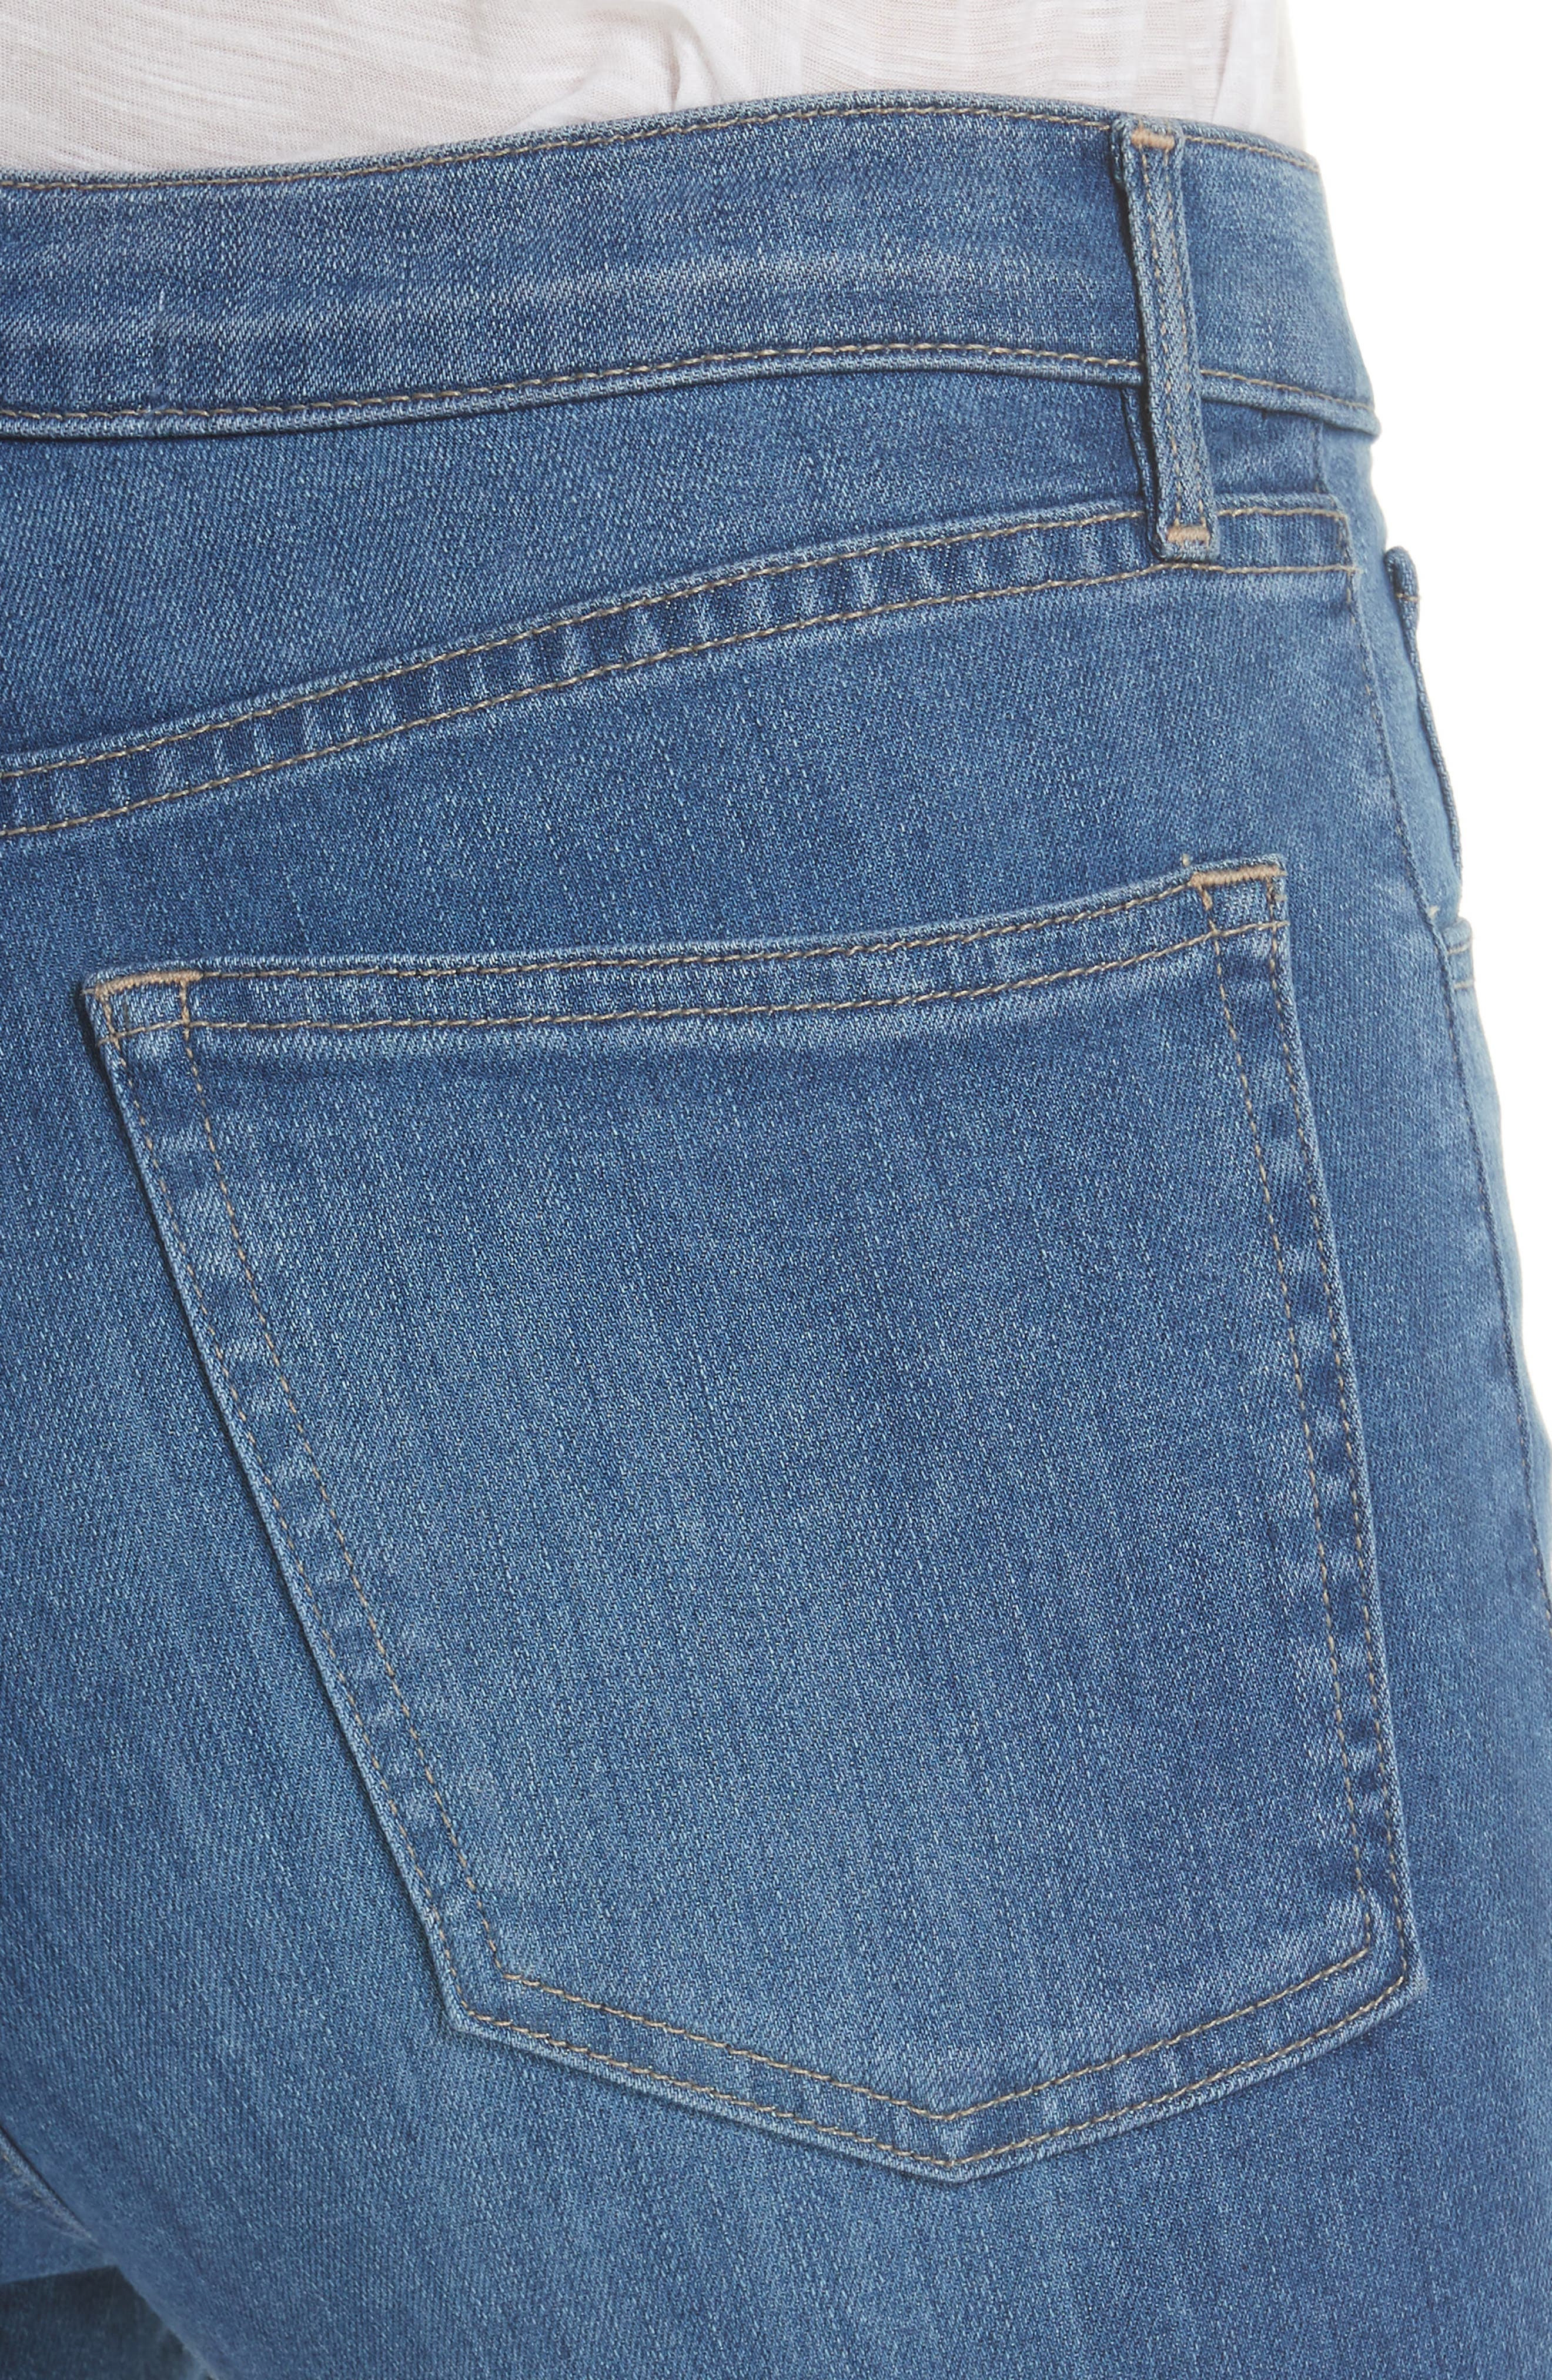 W4 Colette Crop Skinny Jeans,                             Alternate thumbnail 4, color,                             MILLY